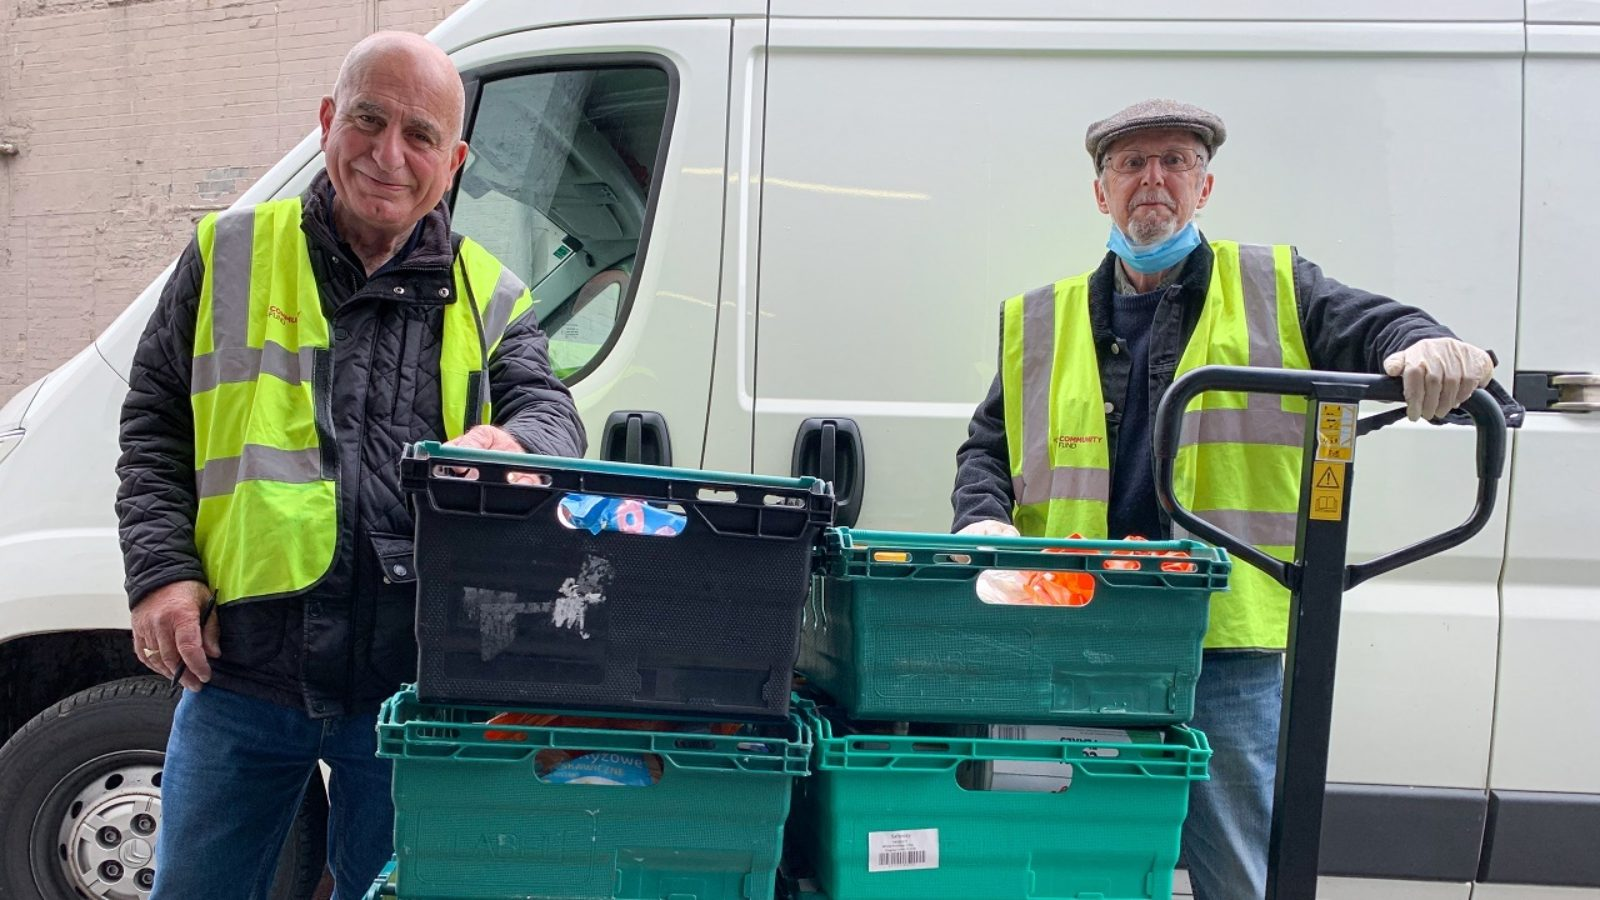 Food charity to provide 370,000 additional meals to vulnerable people this year